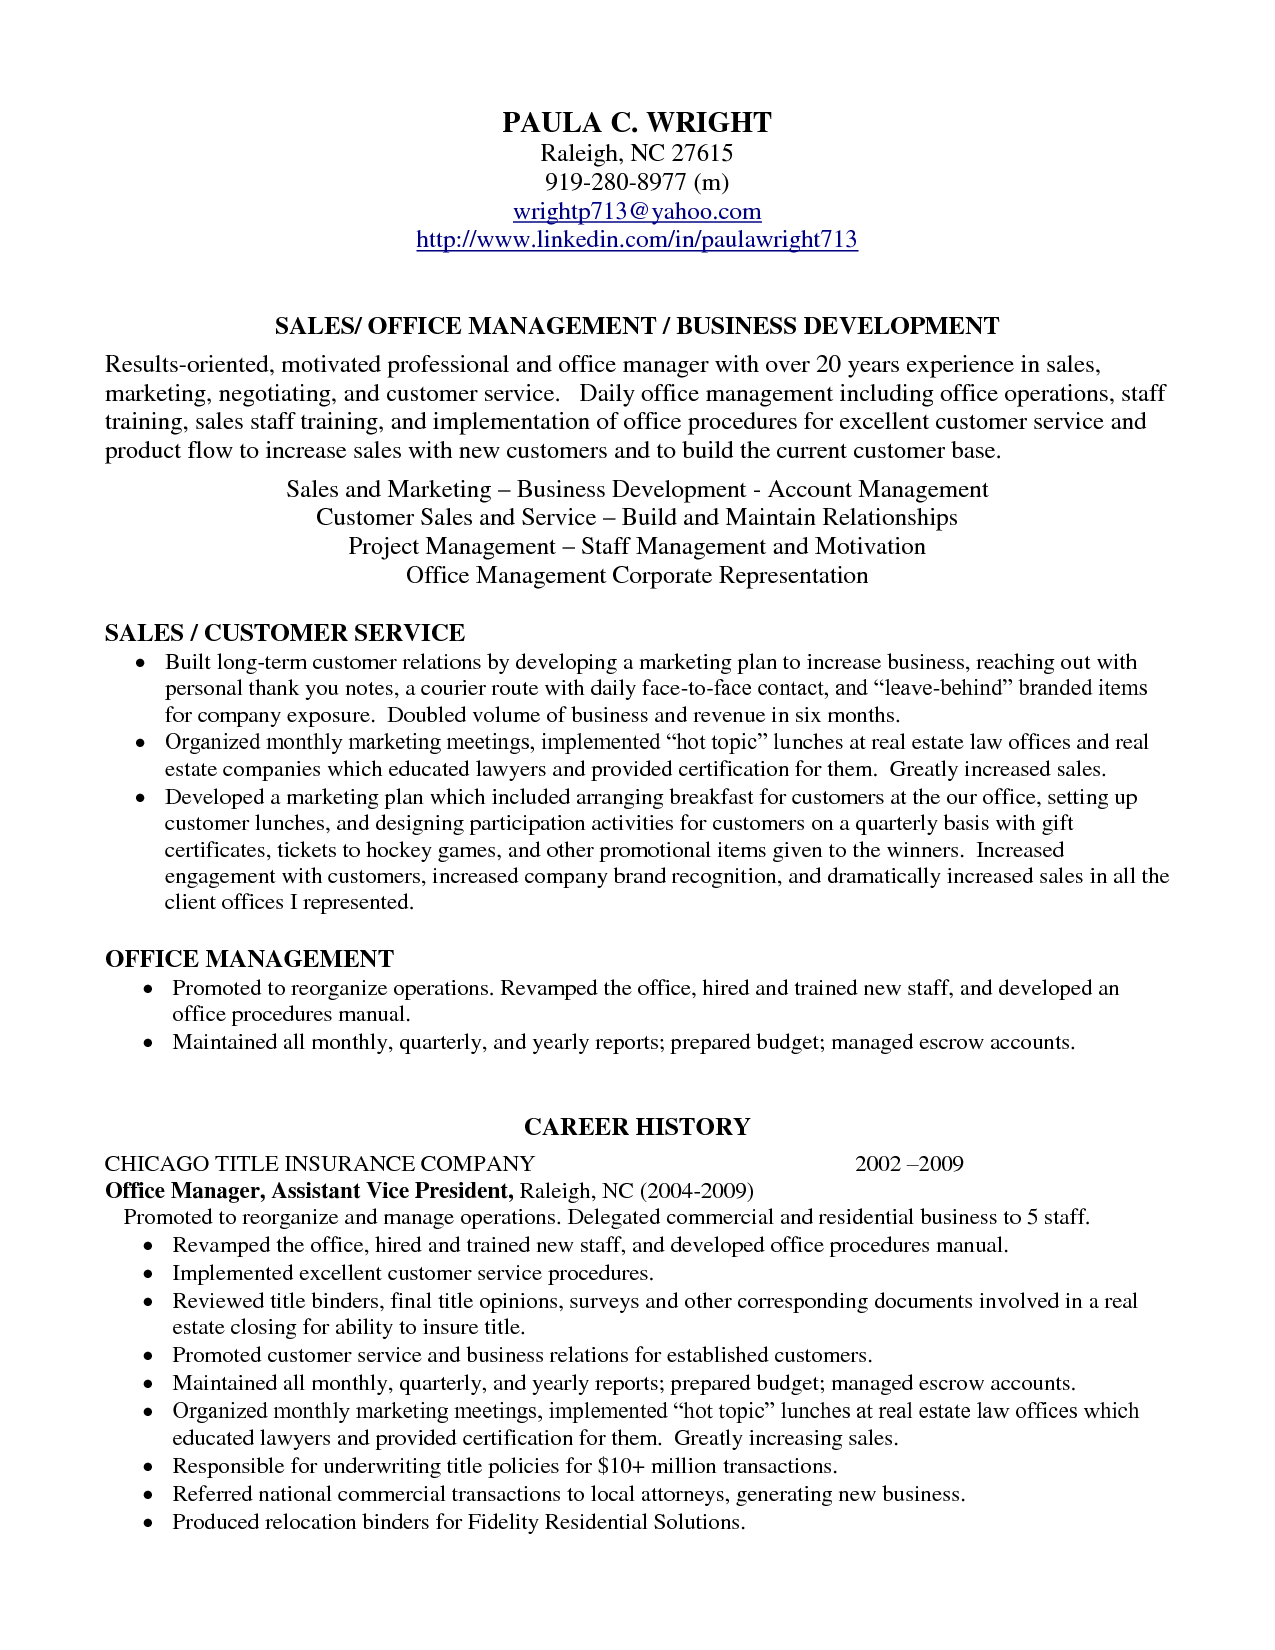 sales profile resume sample converza co